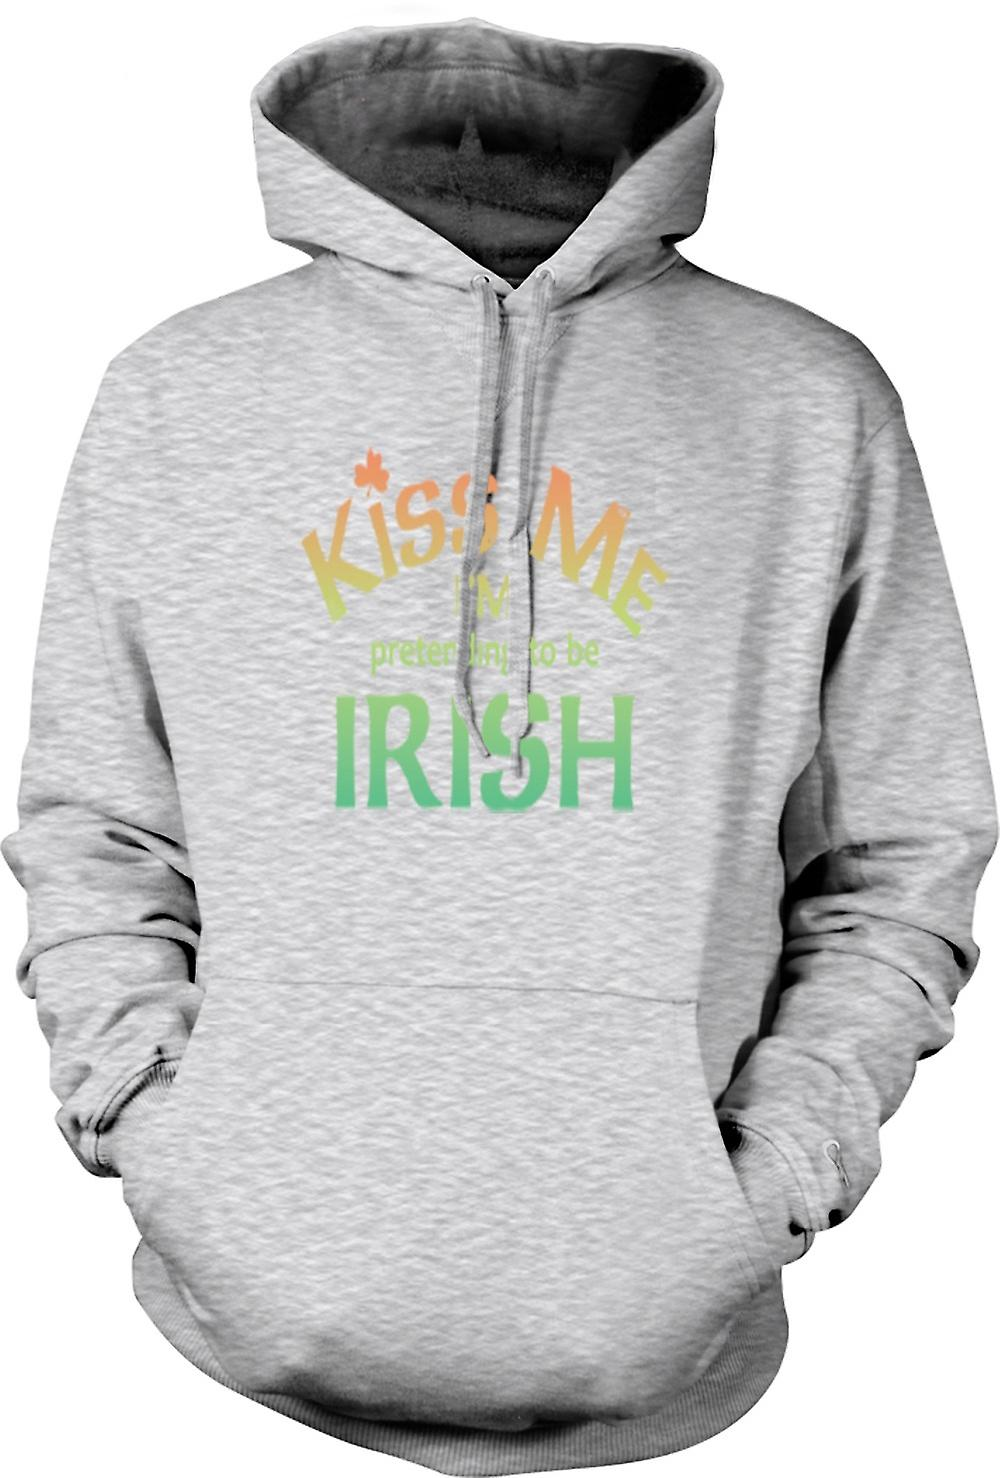 Mens Hoodie - Kiss me I'm pretending to be Irish